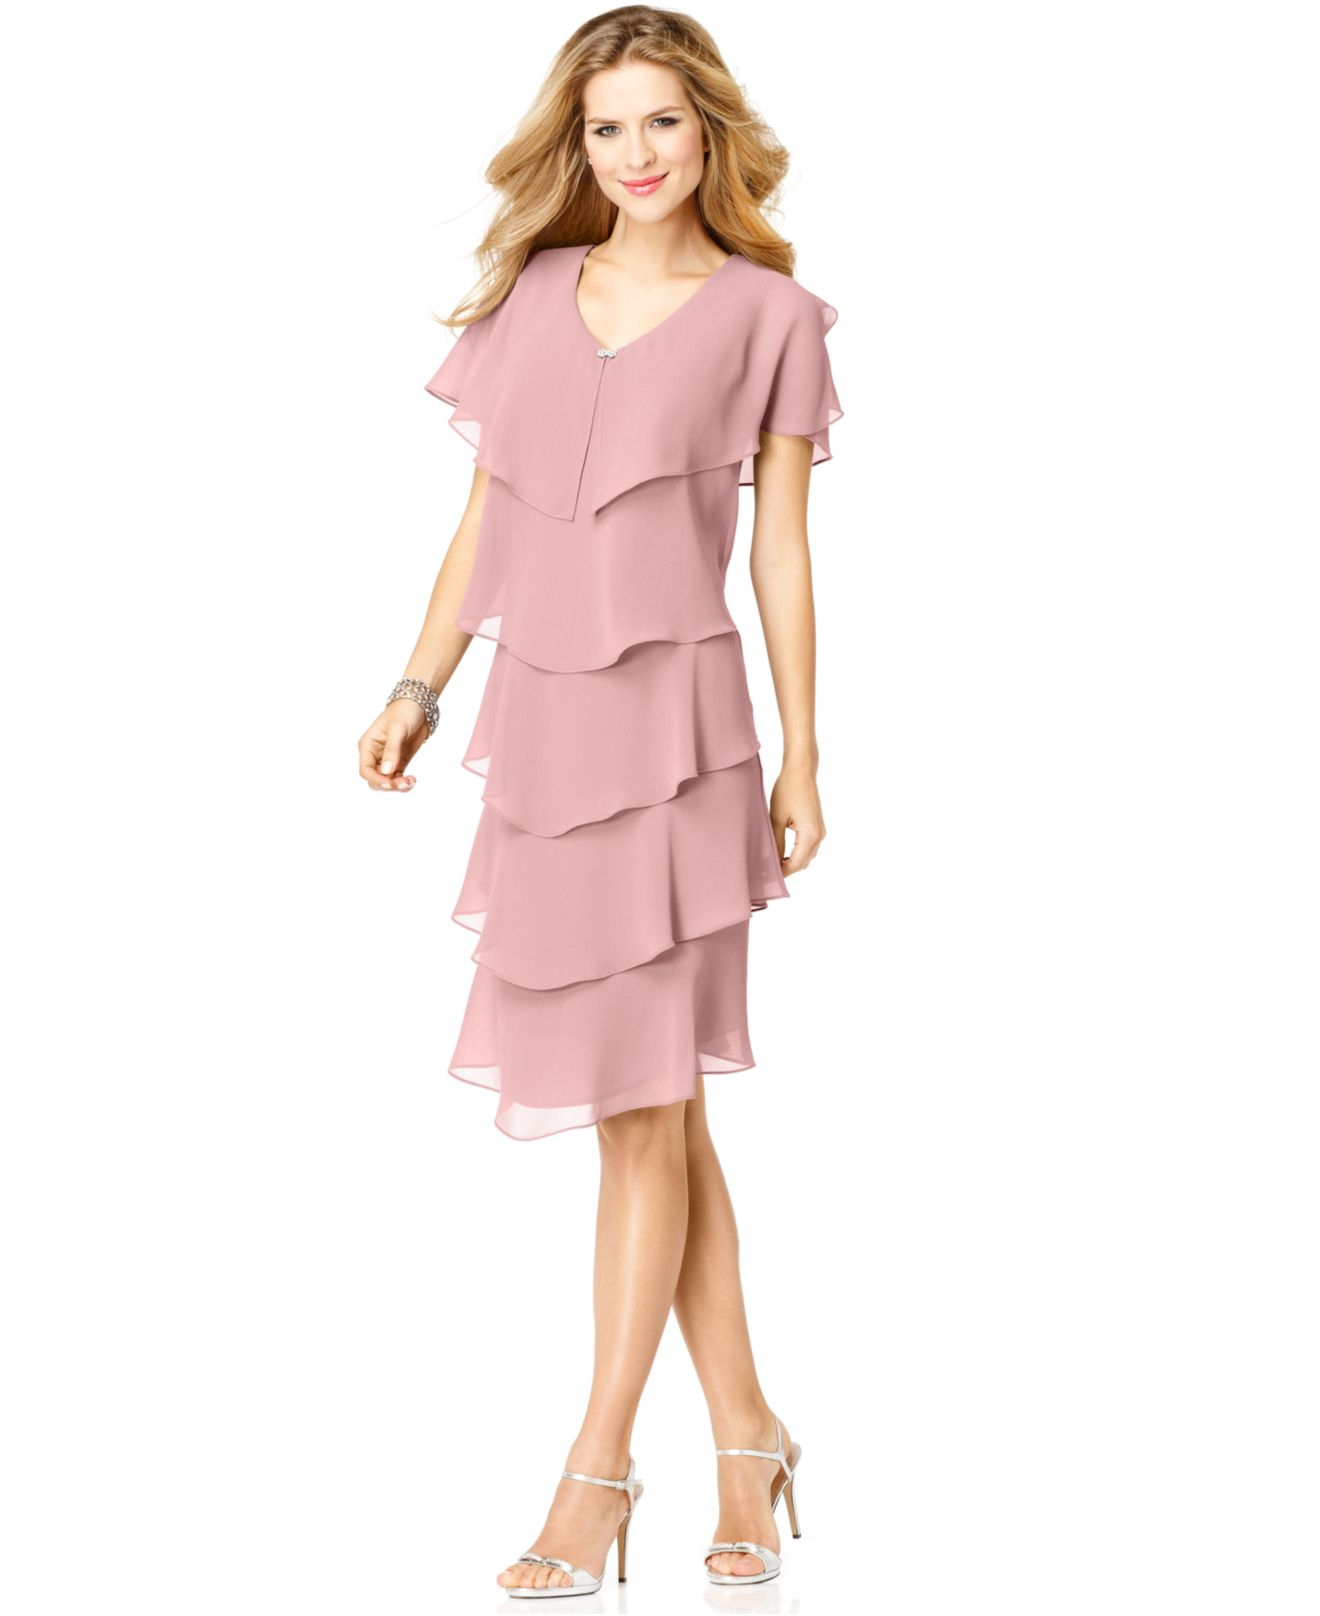 Patra Short-Sleeve Tiered Dress in Pink - Lyst